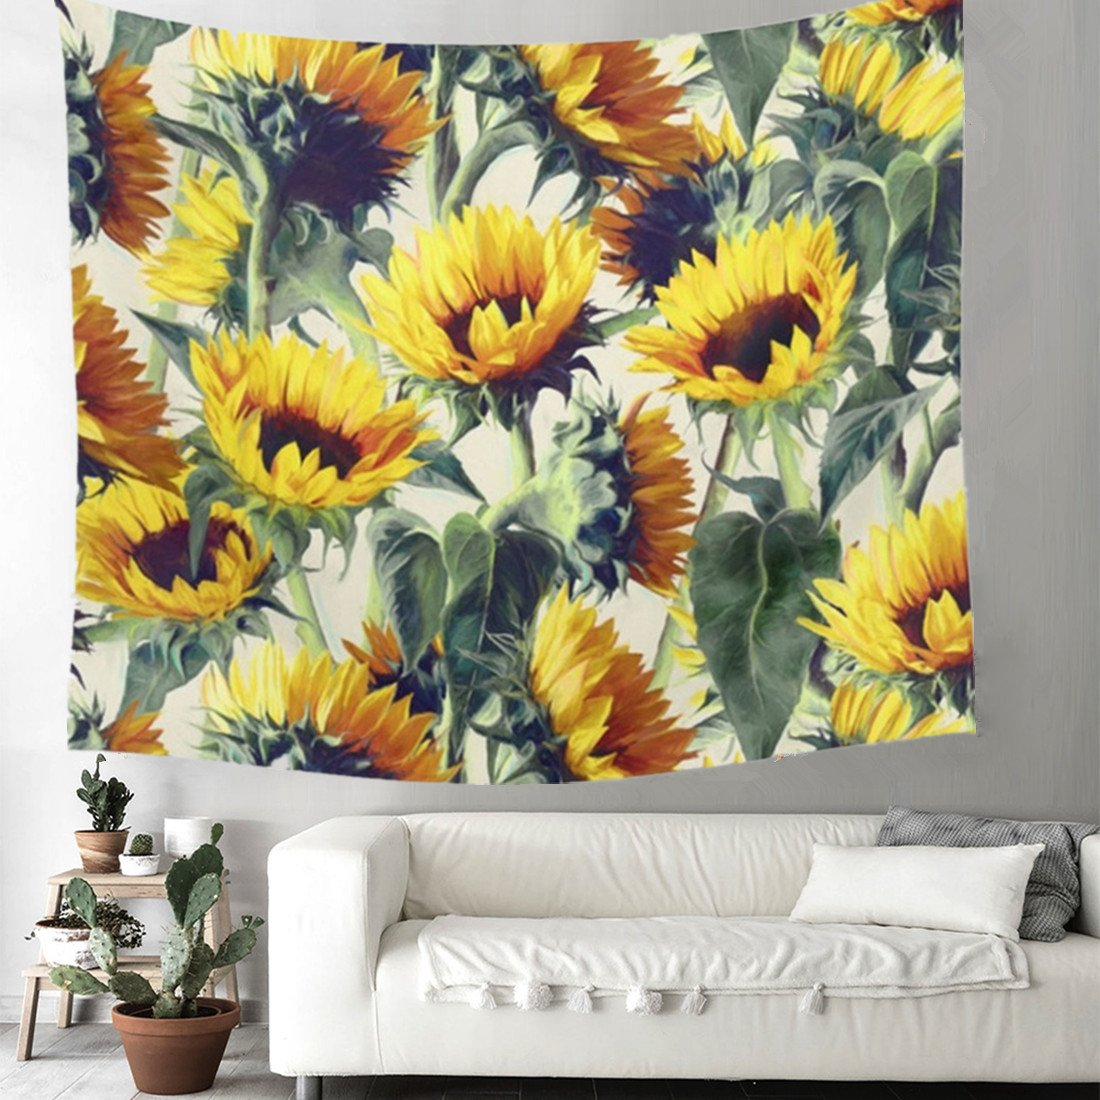 Grace store Boho Wall Tapestry Yellow Sunflower Tapestry Wall hanging Mandala Tapestry for Bedroom, W59 x L51